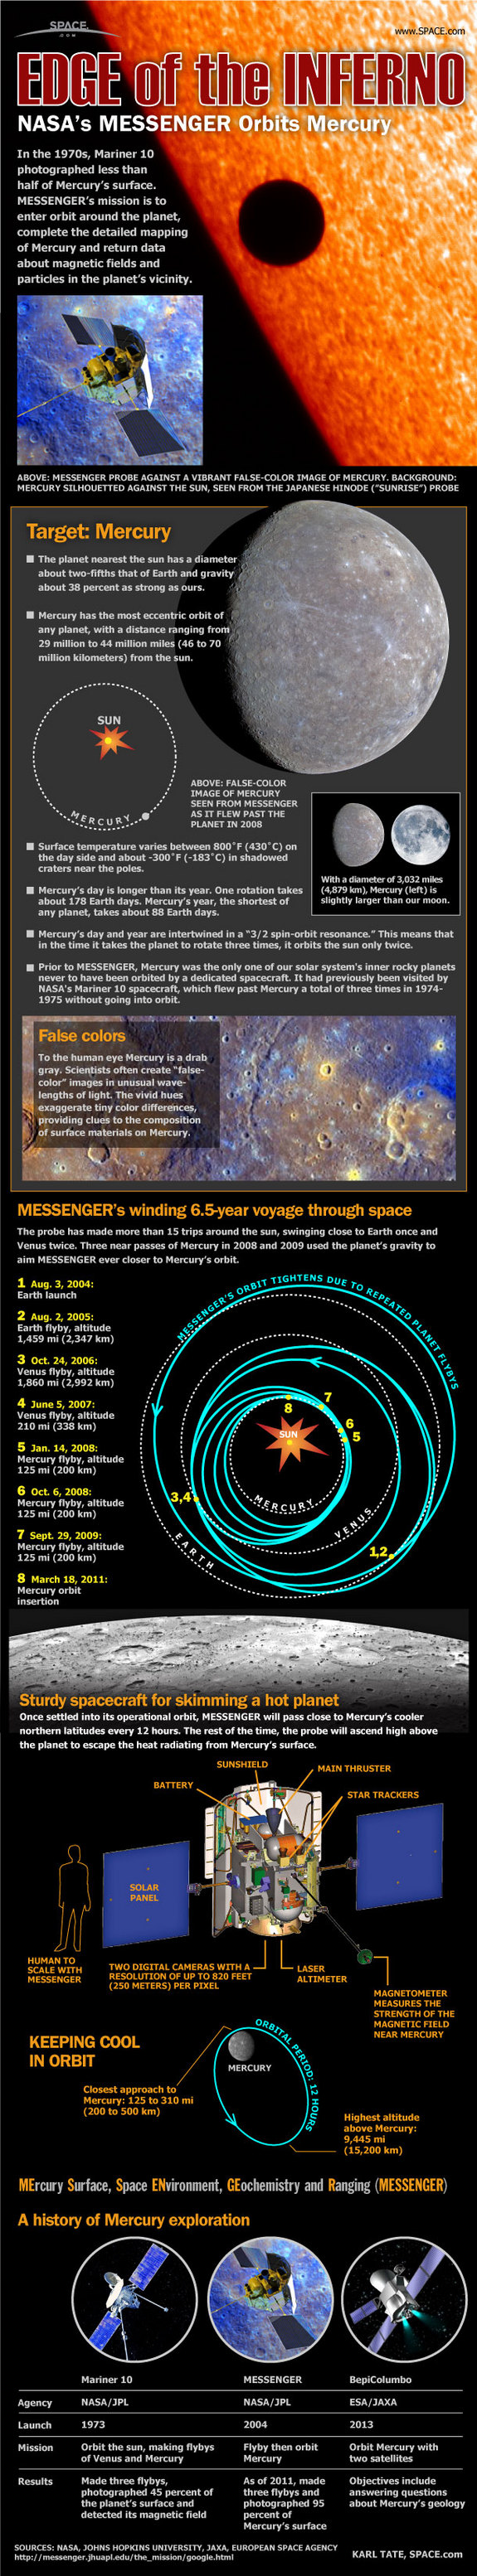 Learn more about NASA's Messenger mission, the first ever set to orbit the planet Mercury, in this SPACE.com infographic.